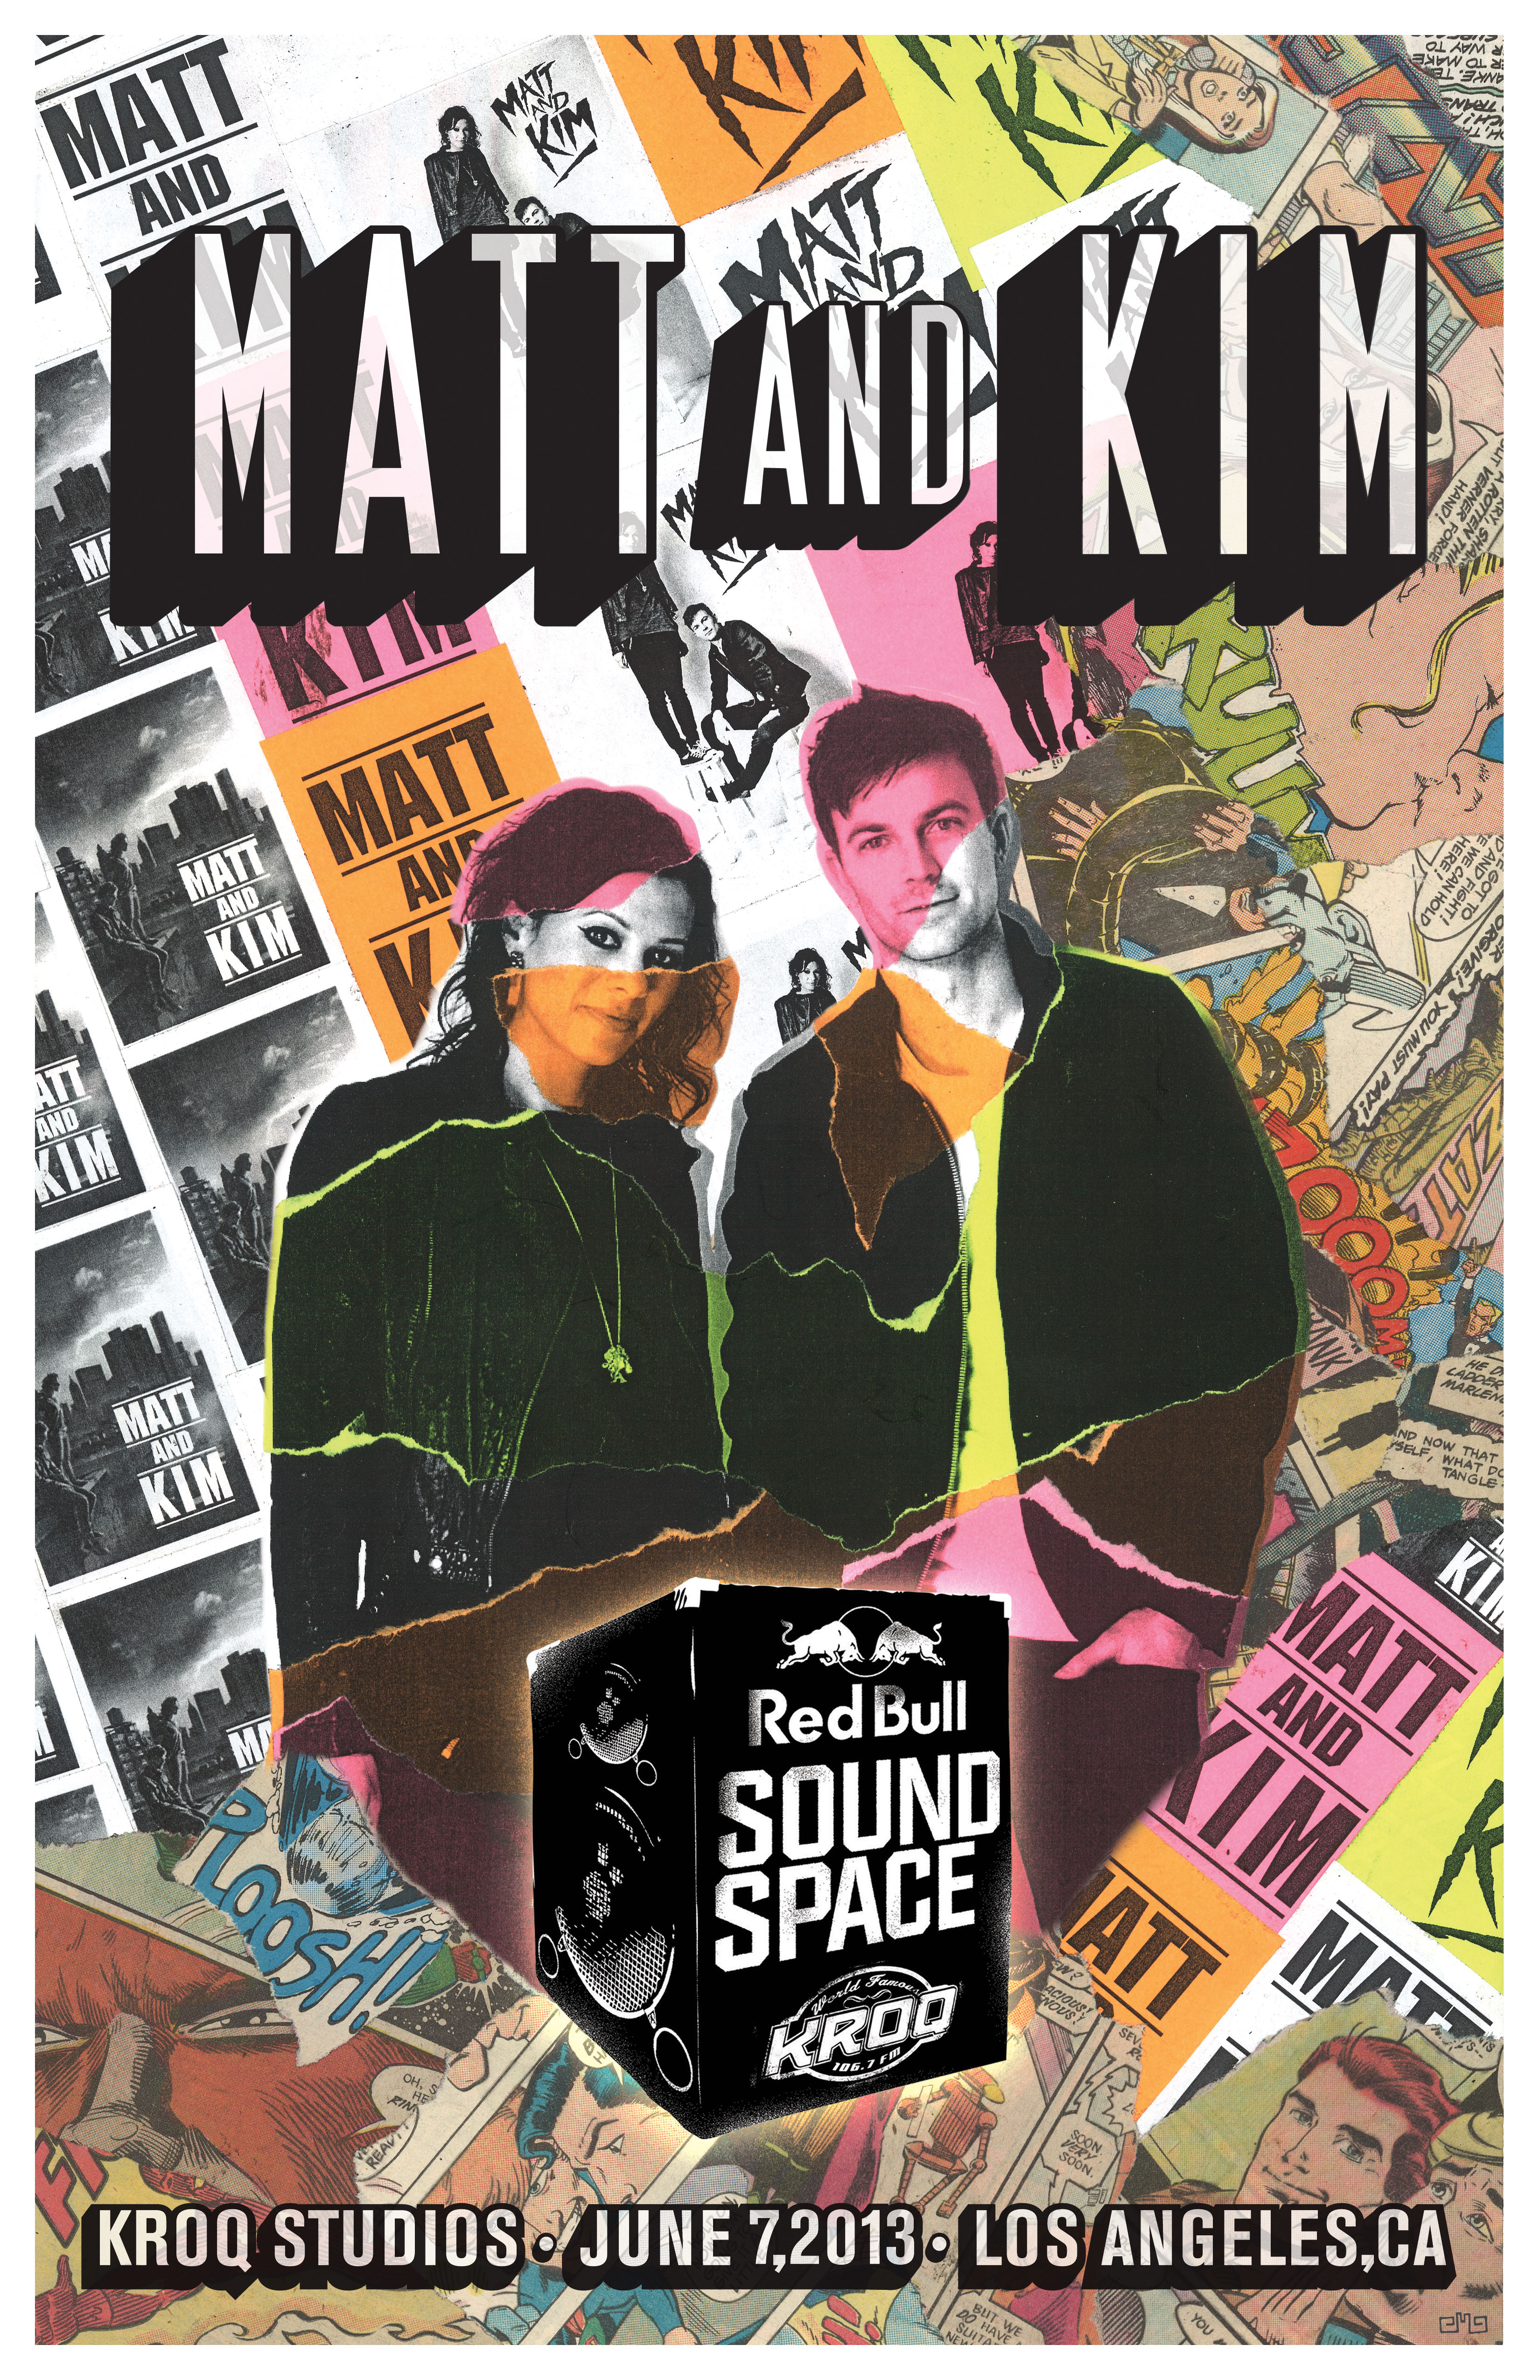 130607-MATTandKIM_soundspace_poster_FINAL_FLAT.jpg